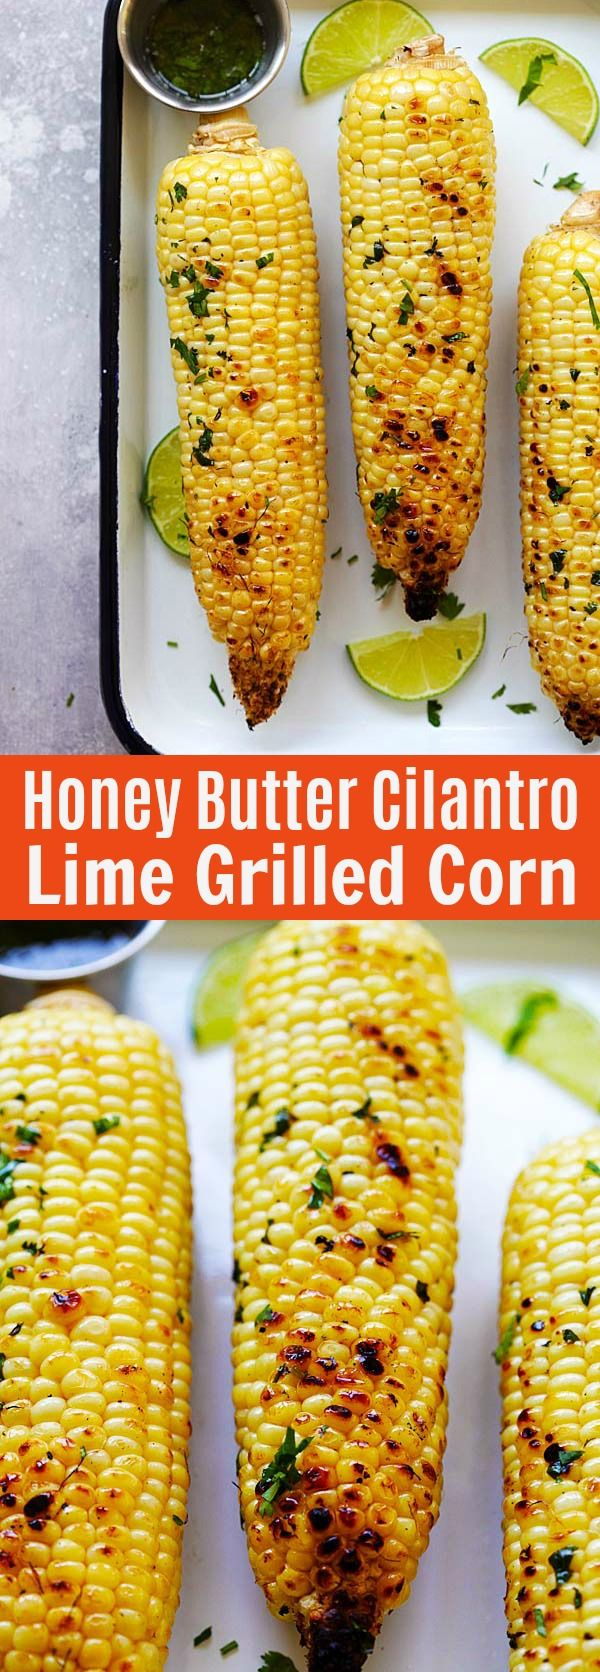 Honey Butter Cilantro Lime Grilled Corn – the best buttery grilled corn recipe with honey, cilantro and lime juice. Perfect balance of flavors | rasamalaysia.com